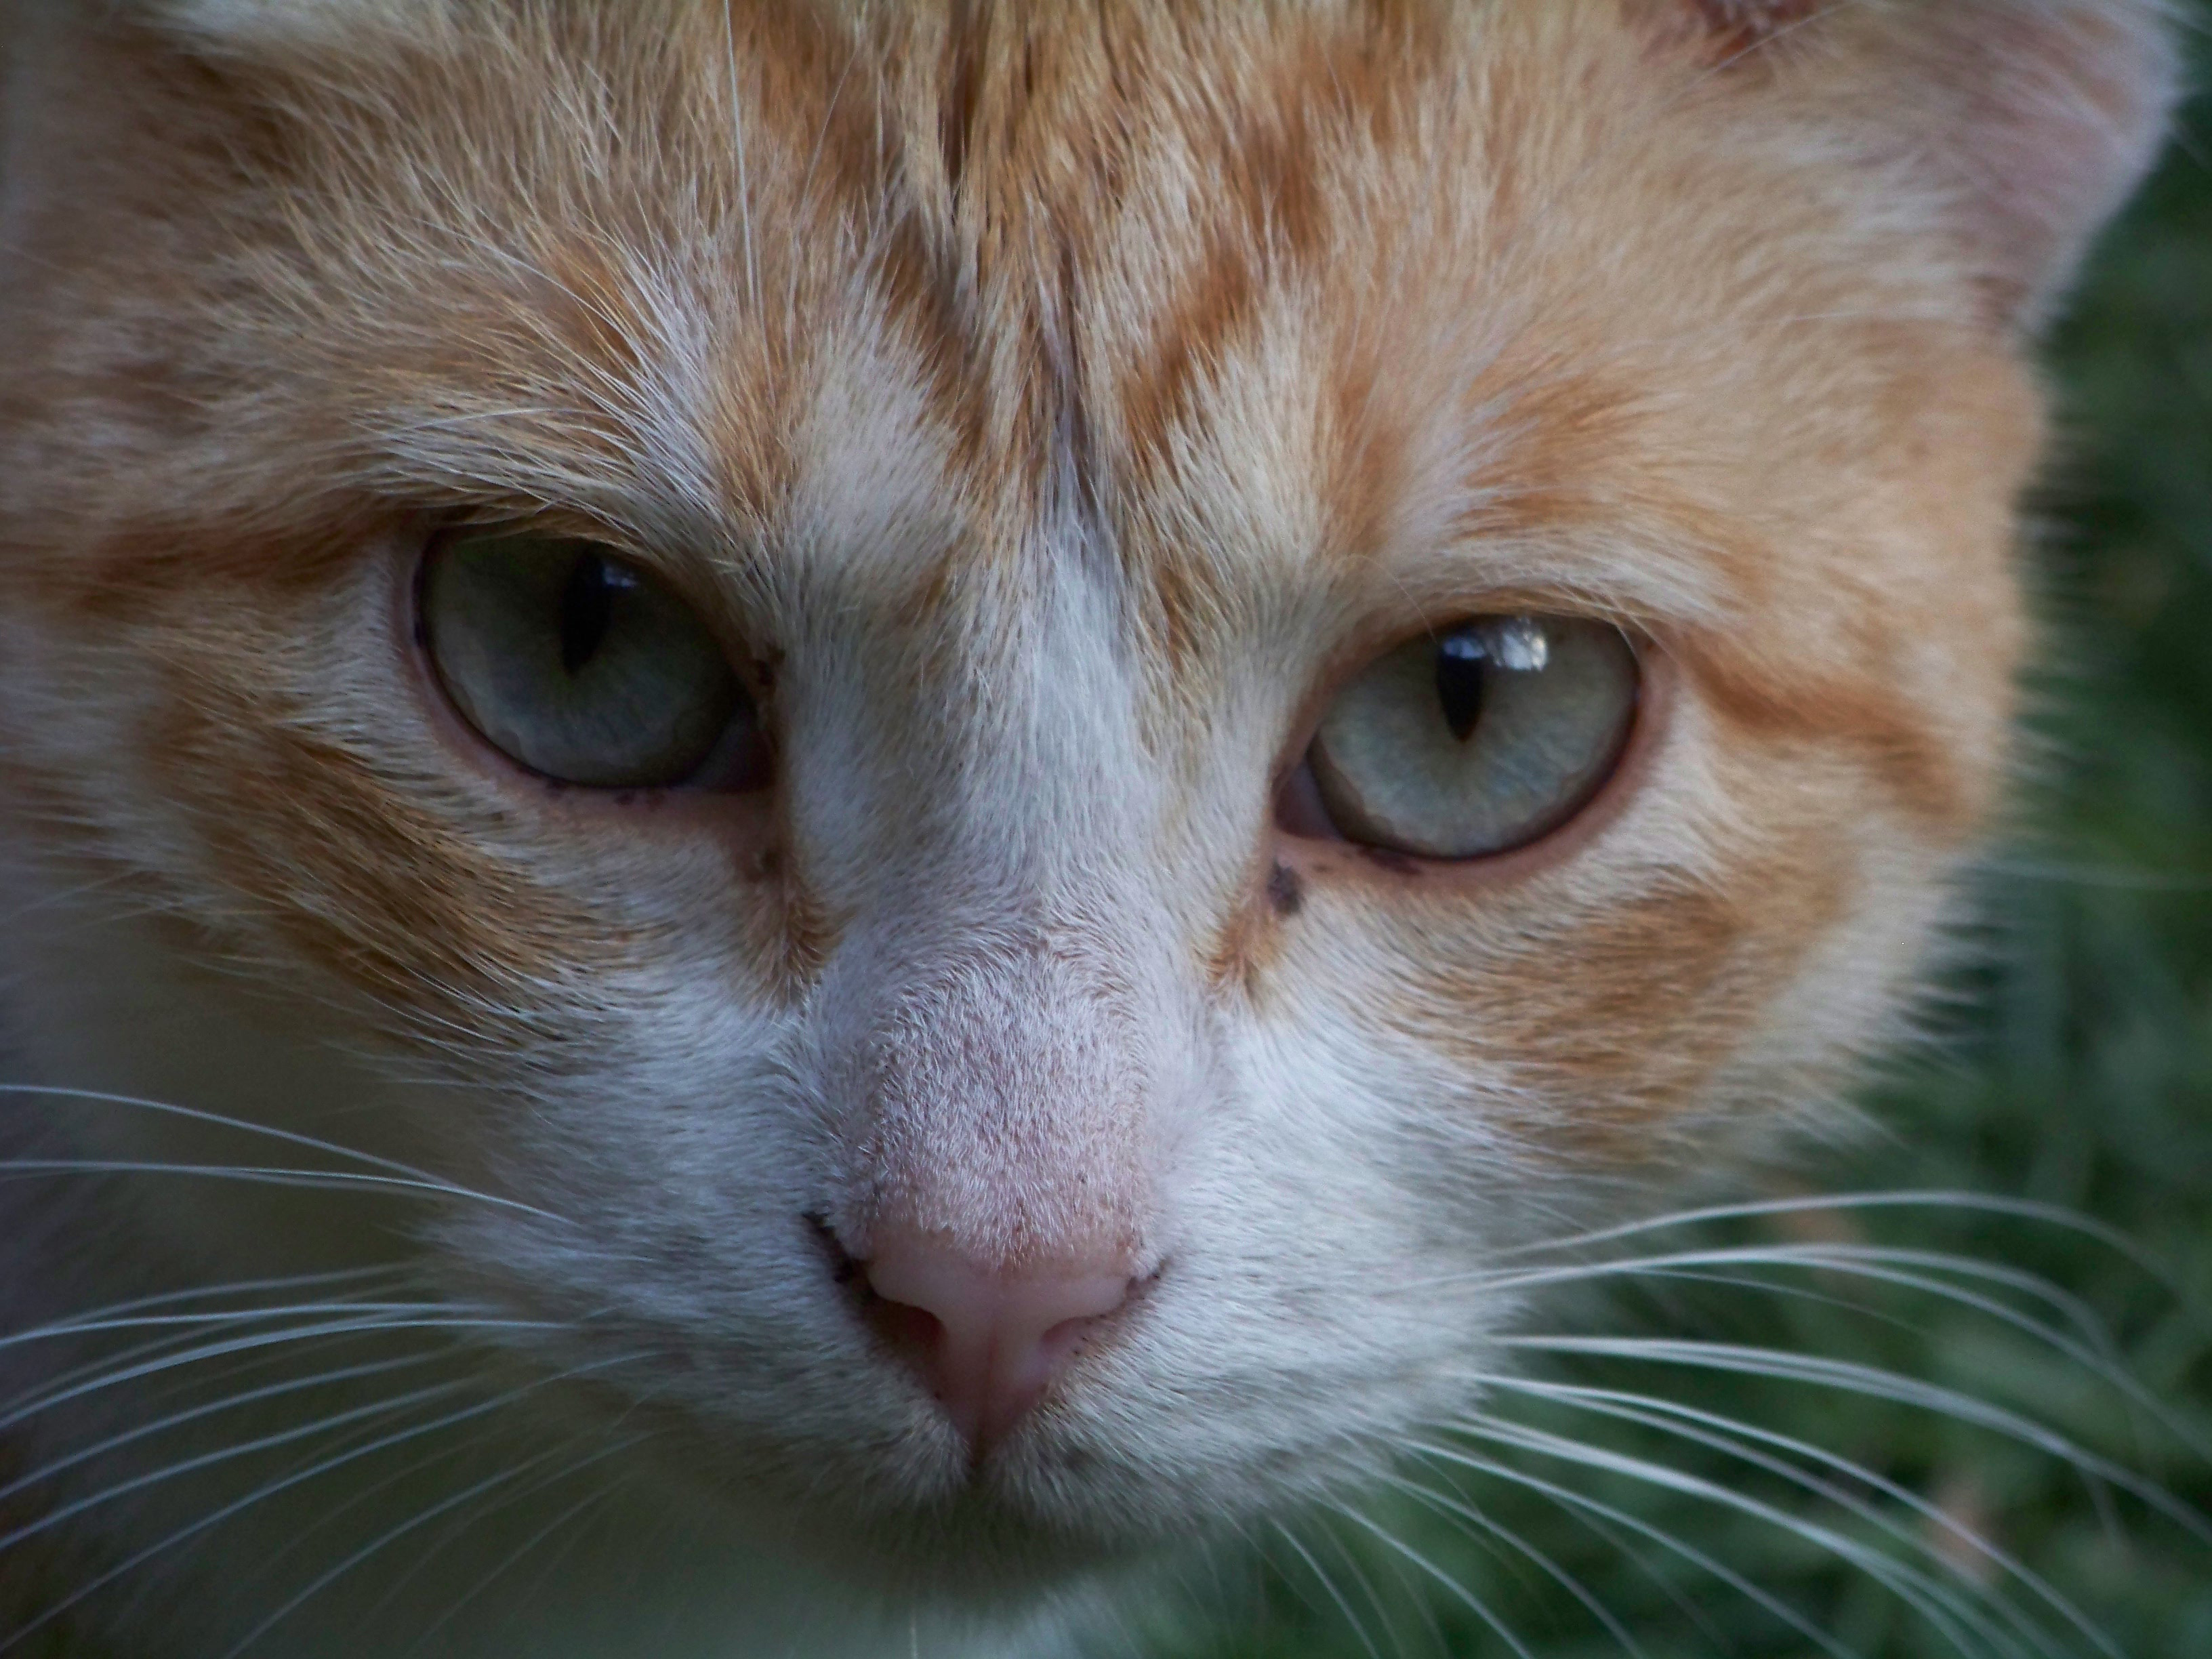 Curiosity, Animal, Cat, Closeup, Curious, HQ Photo